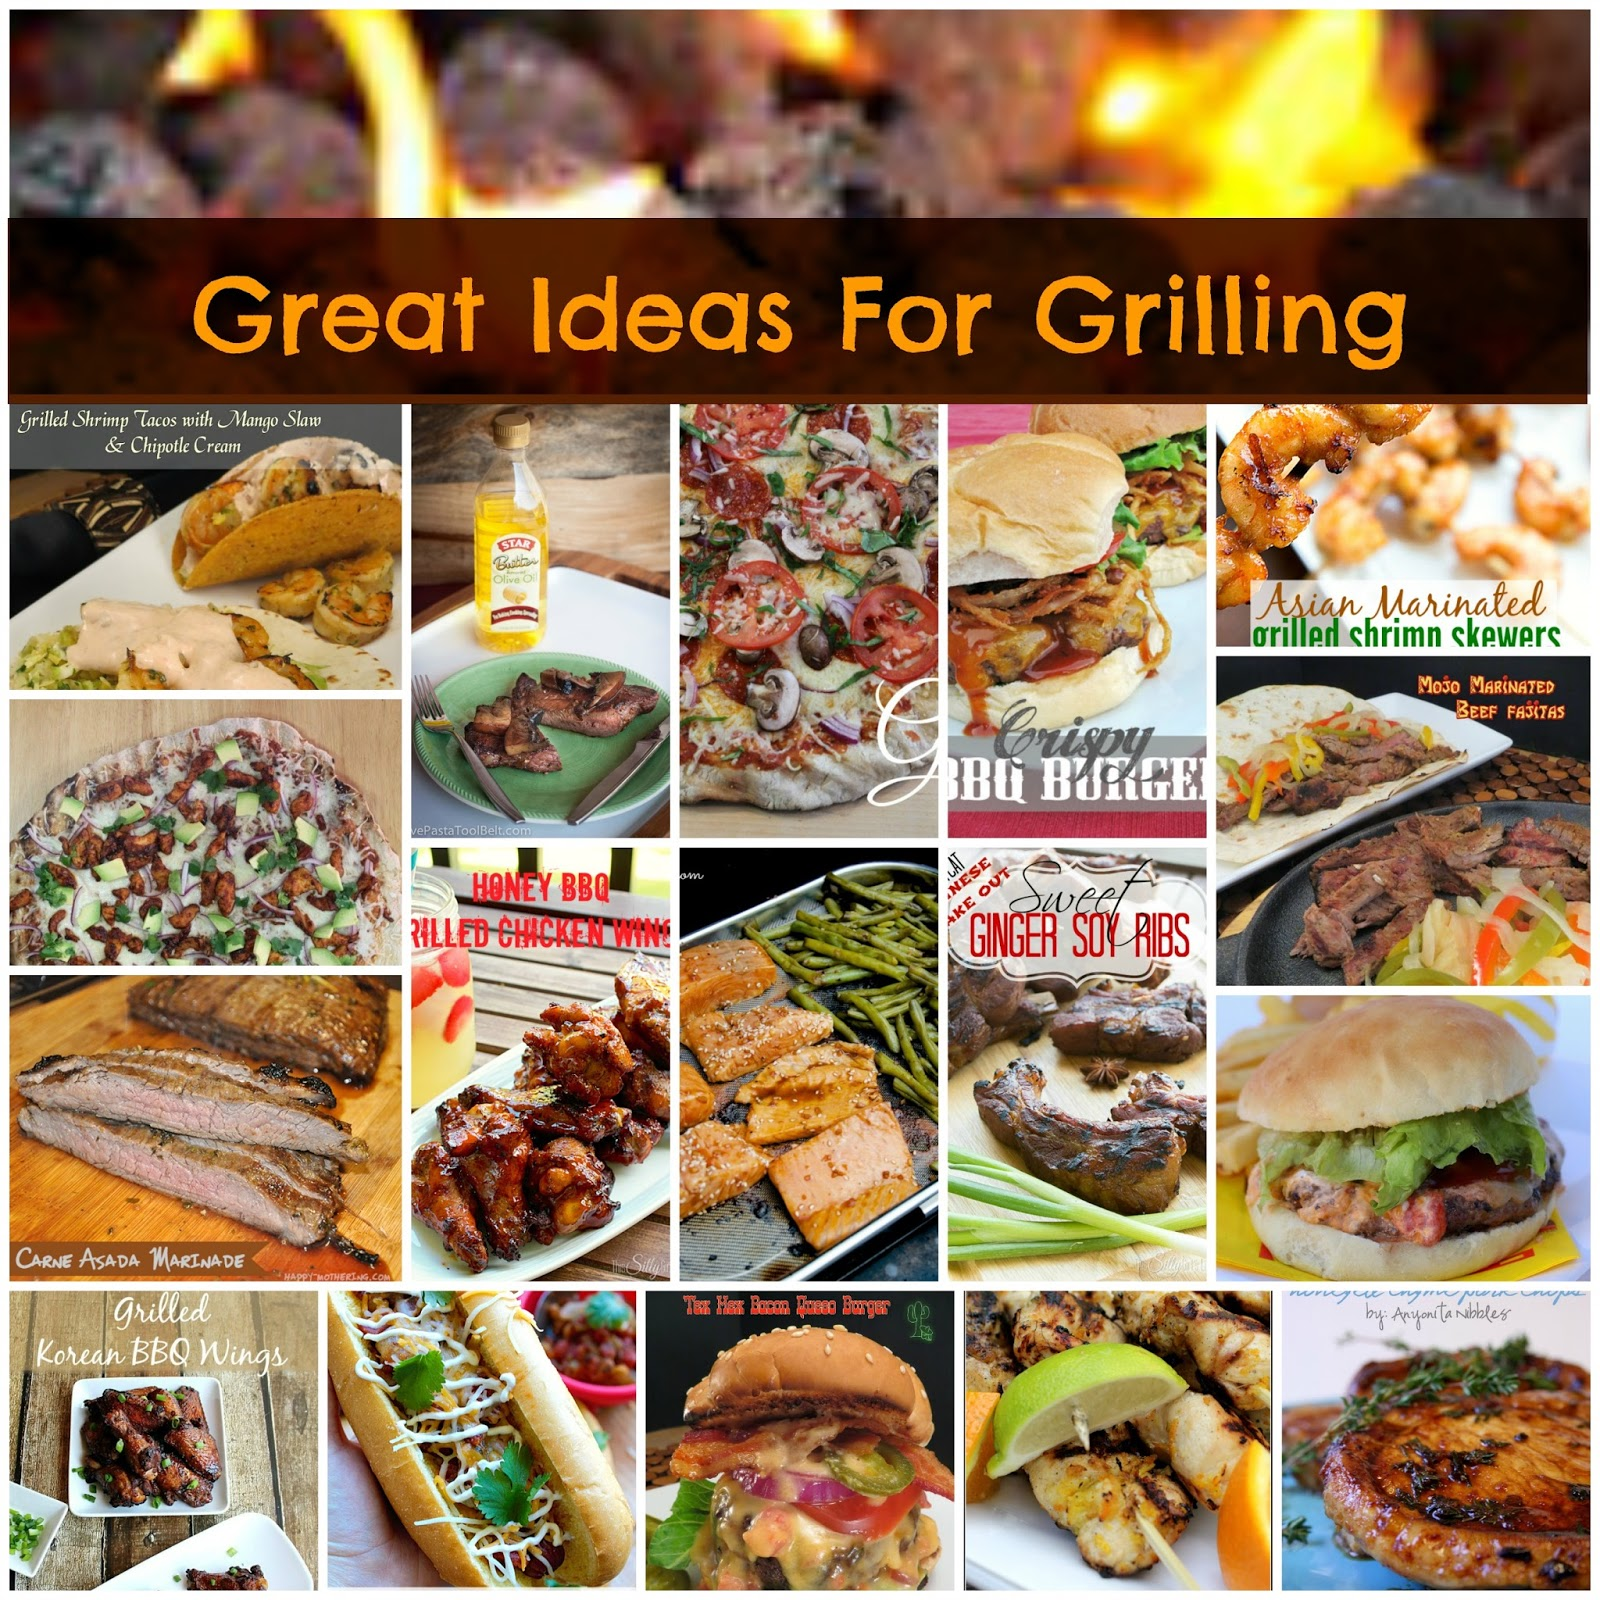 17 Great Ideas for Grilling:  A roundup or 17 recipes to cook on the grill for Memorial Day or anytime you feel like grilling.  From the archives of Great Idea Thursdays.